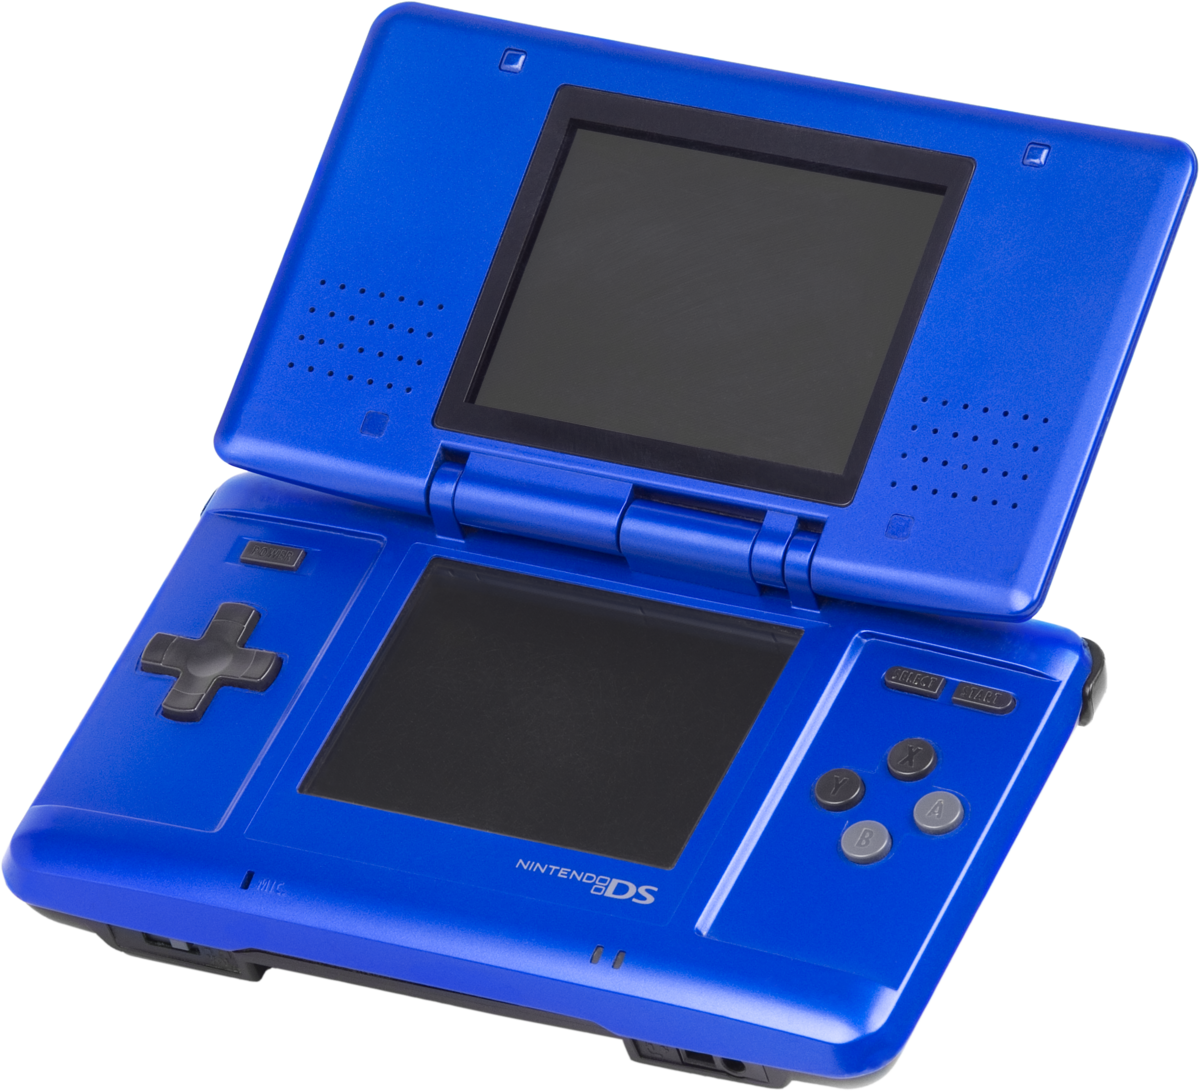 Nintendo ds wikipedia for What color do you like